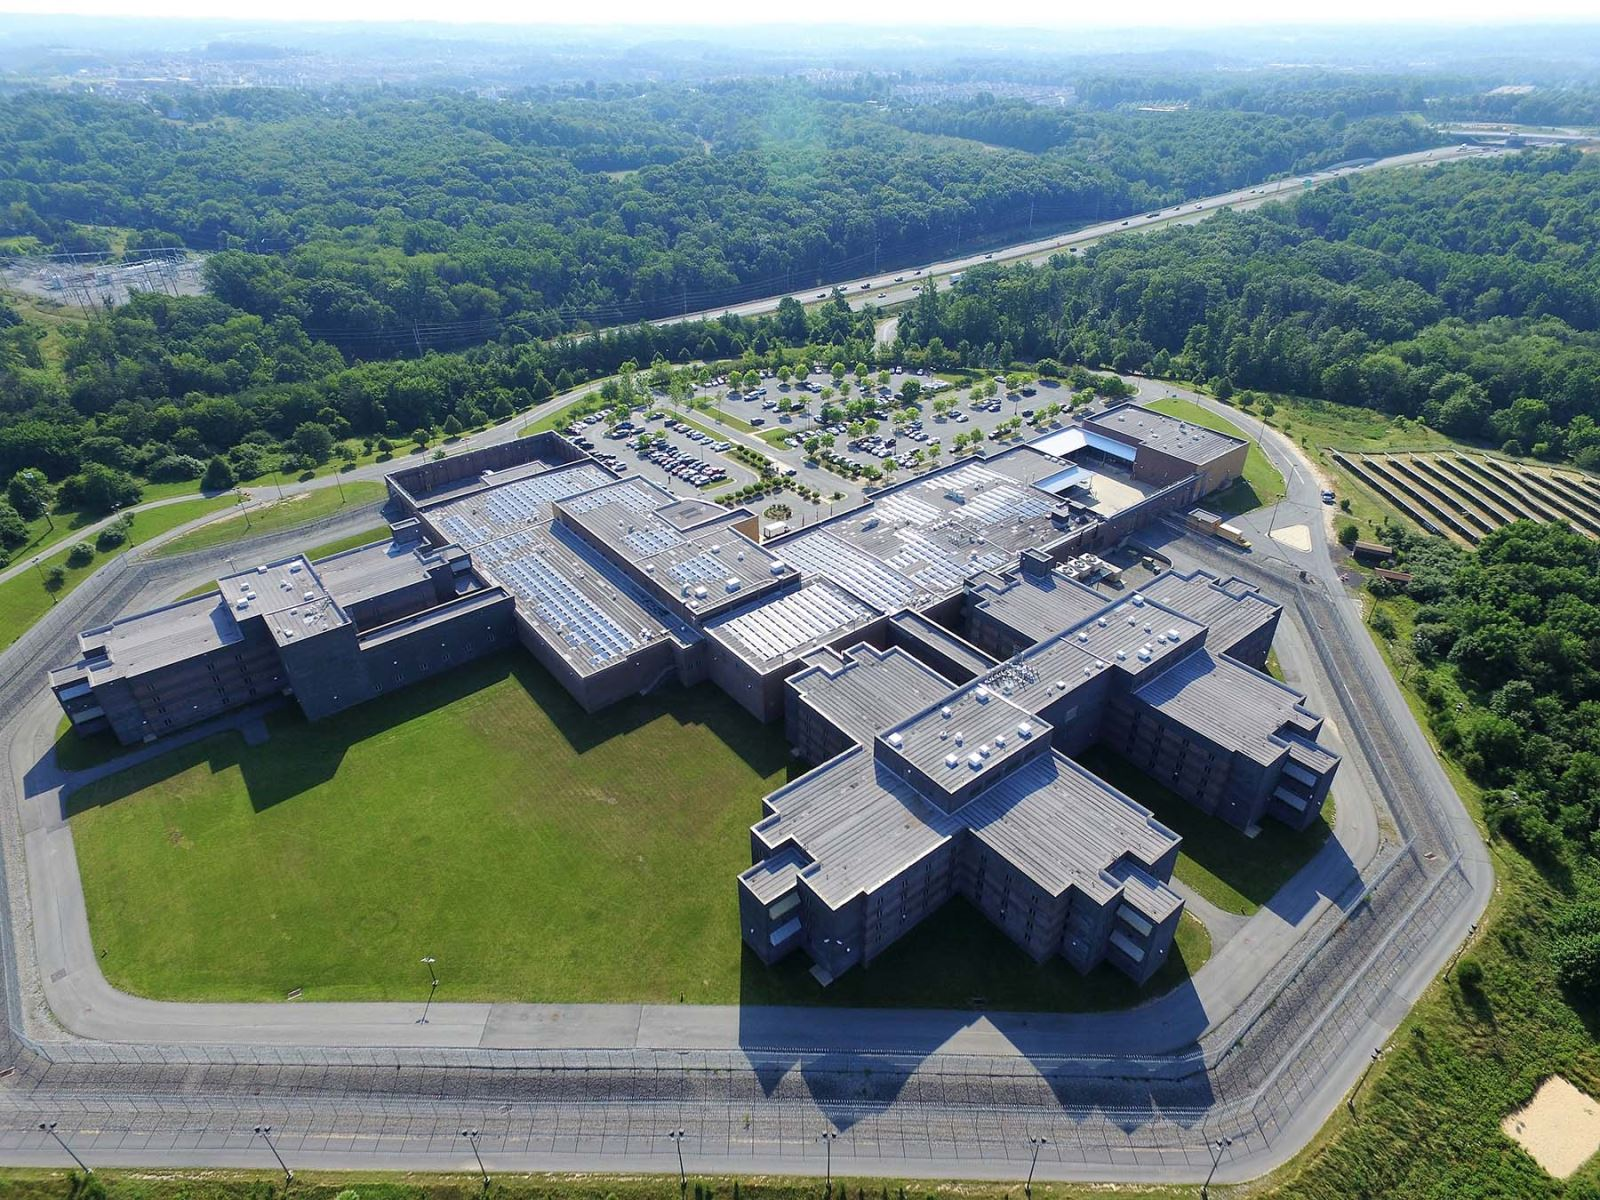 Montgomery County Correctional Facility Roof Solar Panels Overview